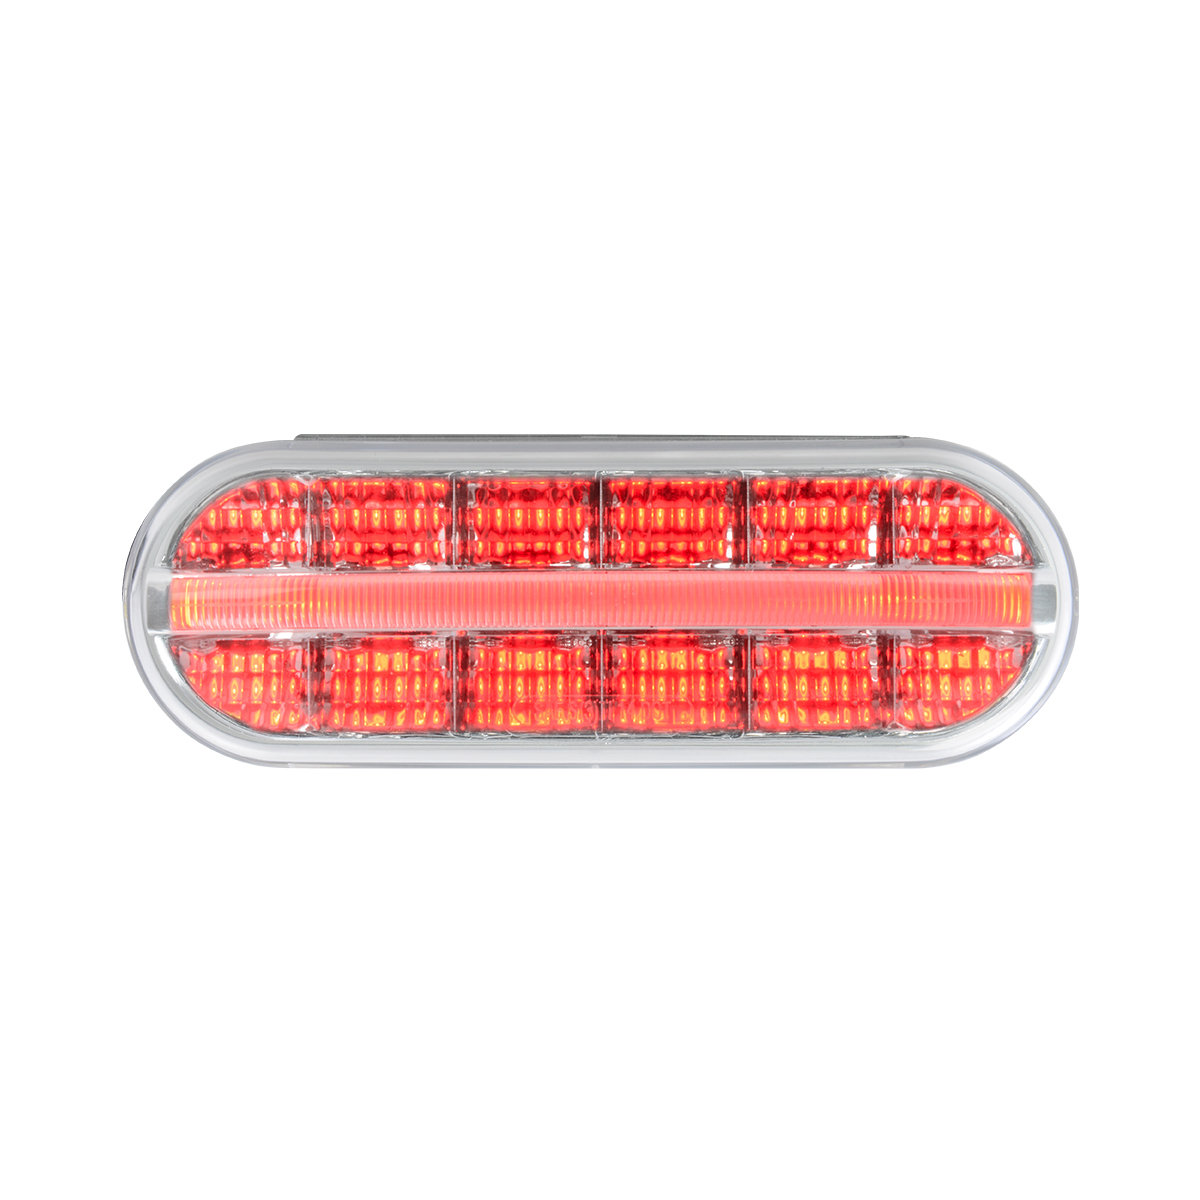 74853 Oval Prime Spyder LED Light in Red/Clear